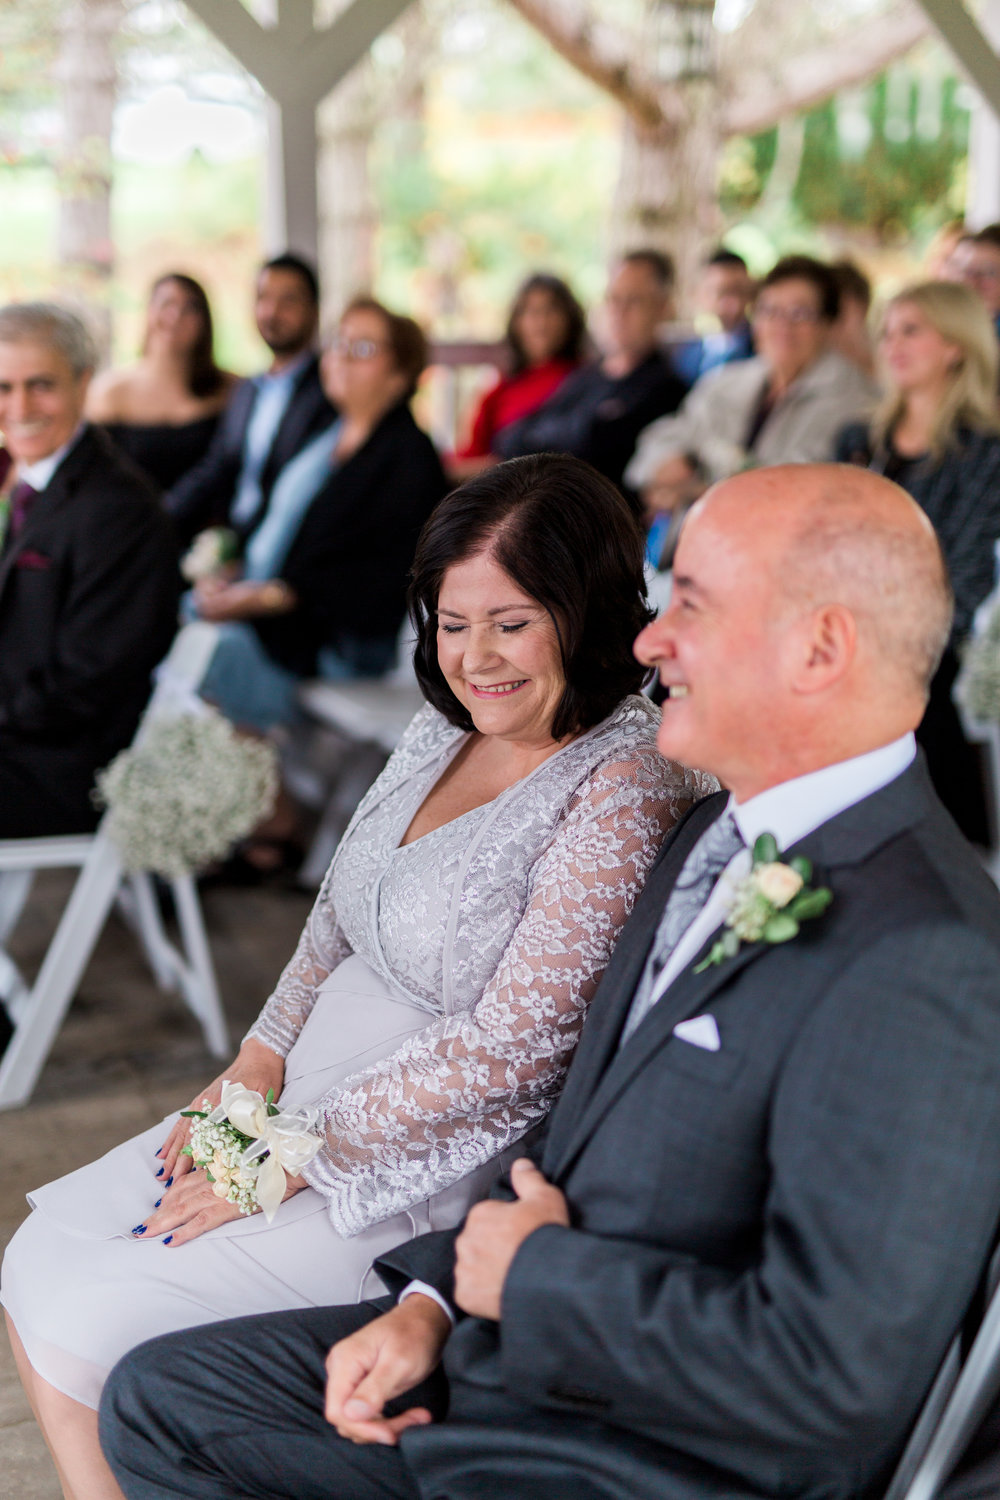 Amir-Golbazi-Danielle-Giroux-Photography_Toronto-Wedding_Cedarwood_Rachel-Paul_180.jpg